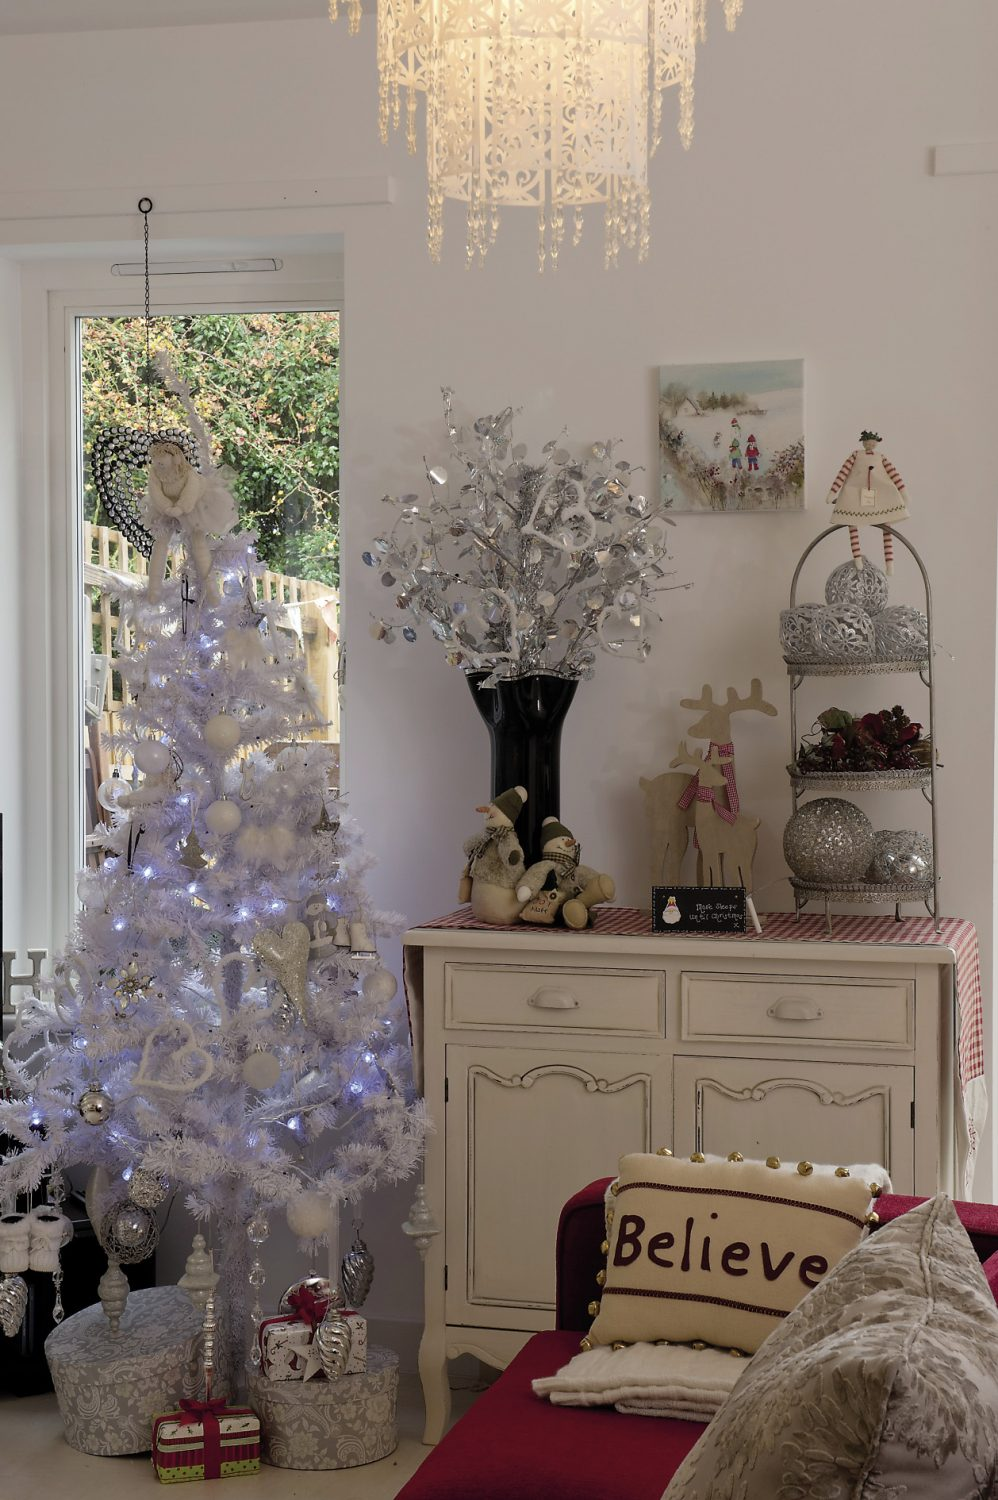 A console table is covered with a red and white gingham runner and a three-tiered sweetmeat stand displays a collection of large baubles as well as a red and white stripy-stockinged peg doll